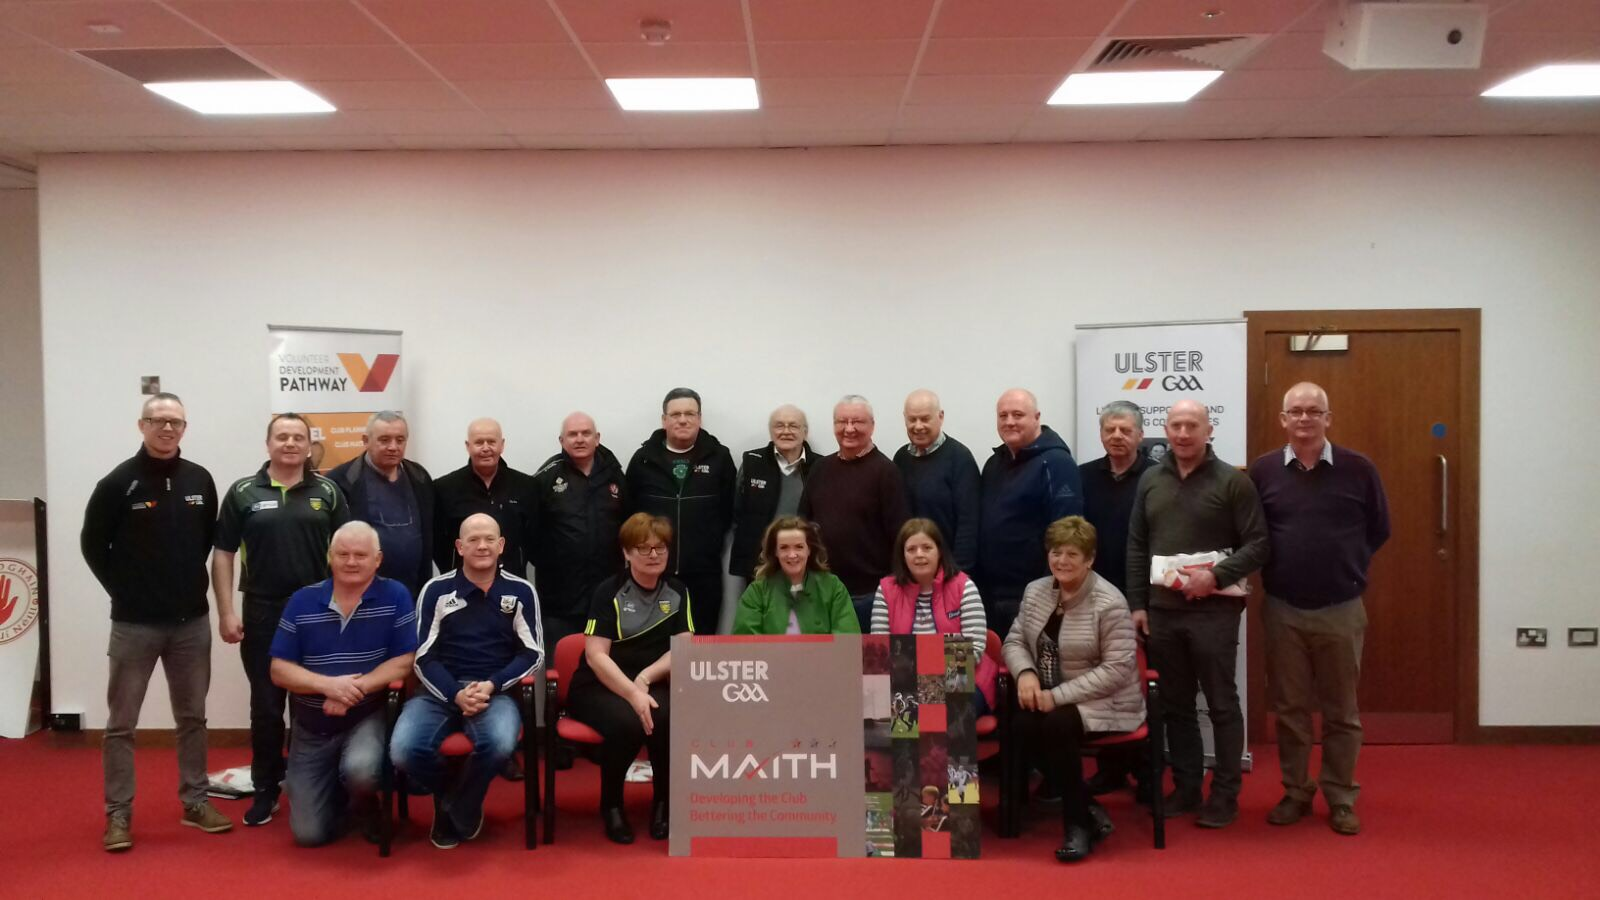 Club Maith Facilitator Training